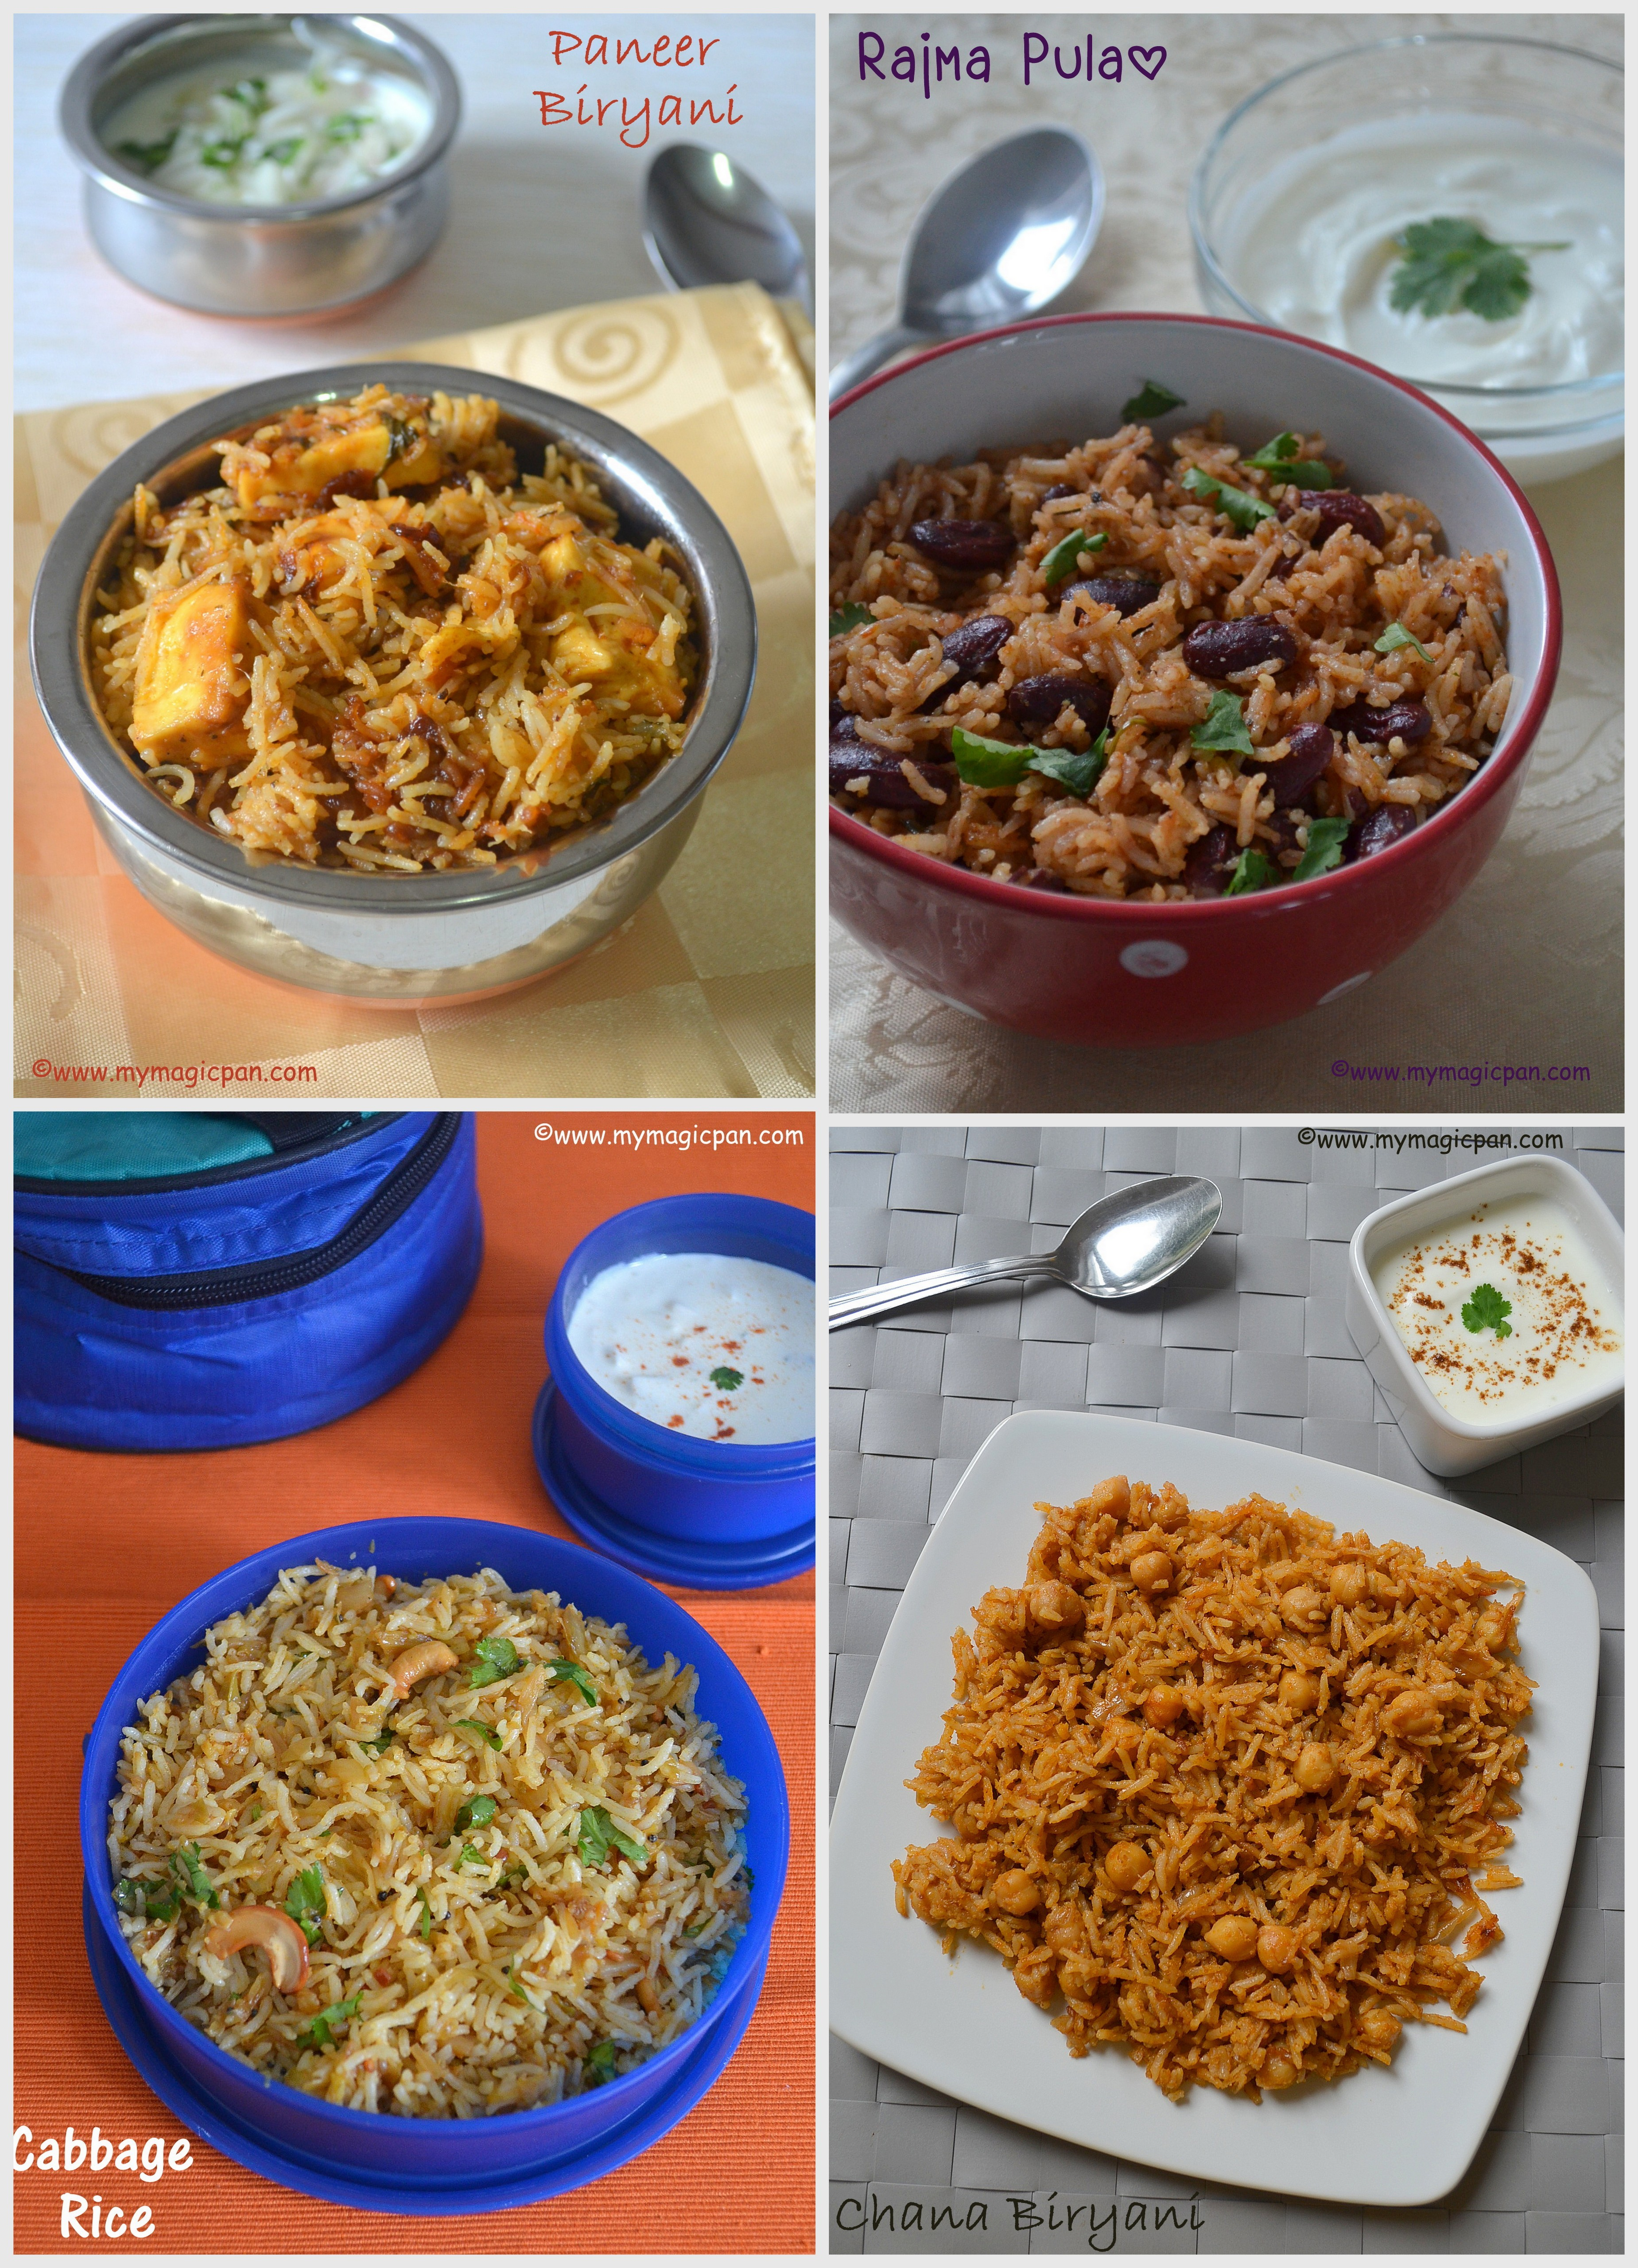 BIRYANI, PULAO, RICE VARIETIES